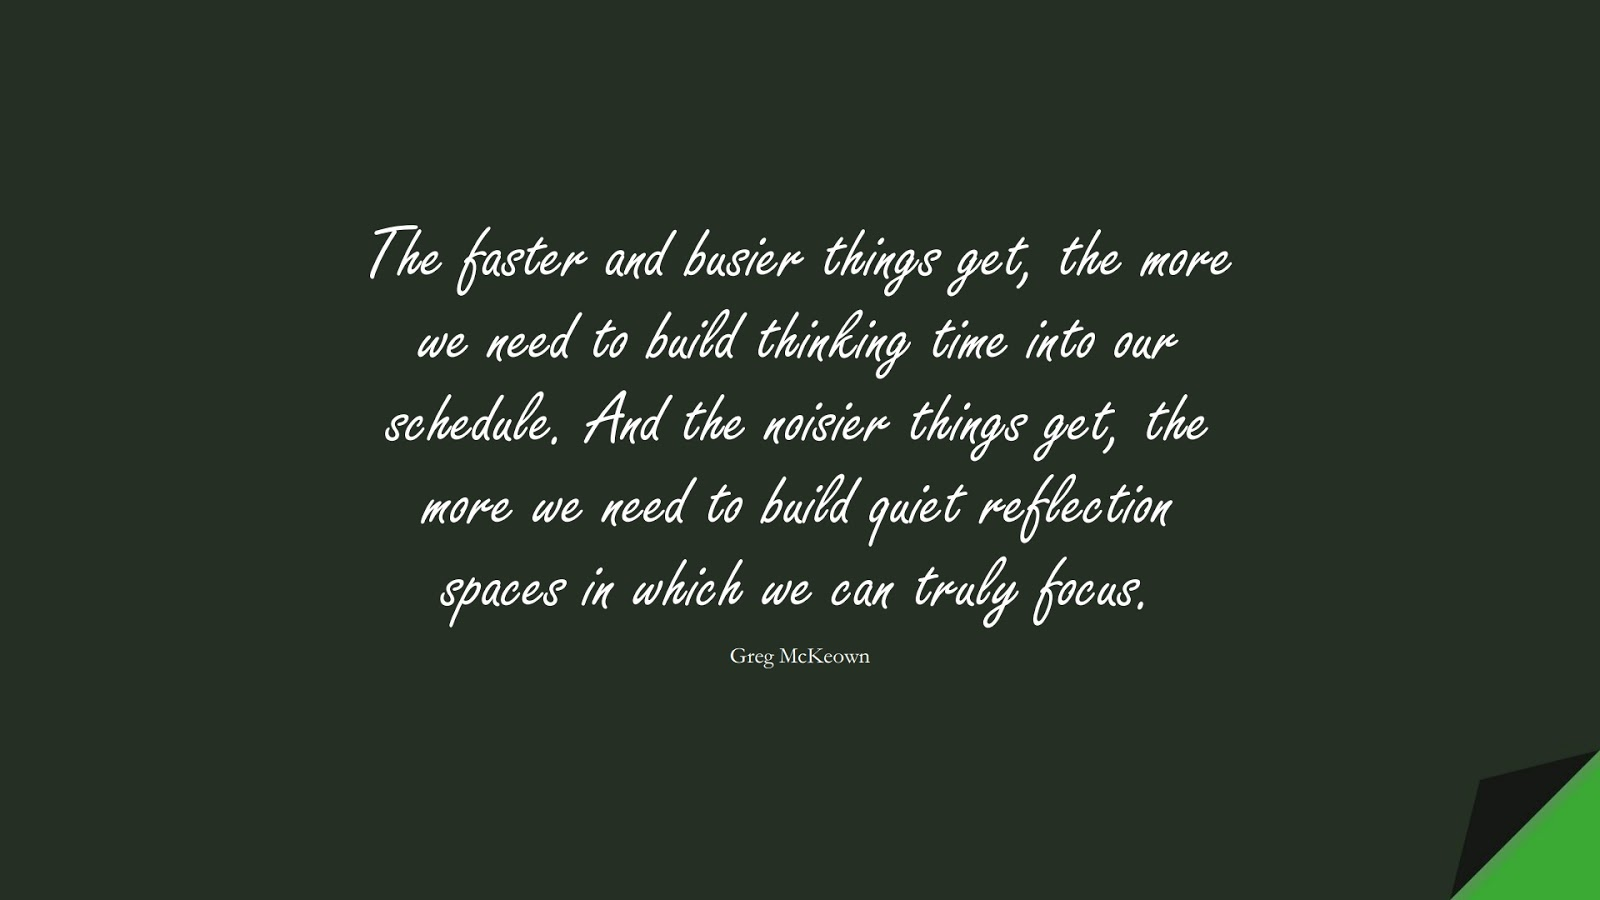 The faster and busier things get, the more we need to build thinking time into our schedule. And the noisier things get, the more we need to build quiet reflection spaces in which we can truly focus. (Greg McKeown);  #AnxietyQuotes